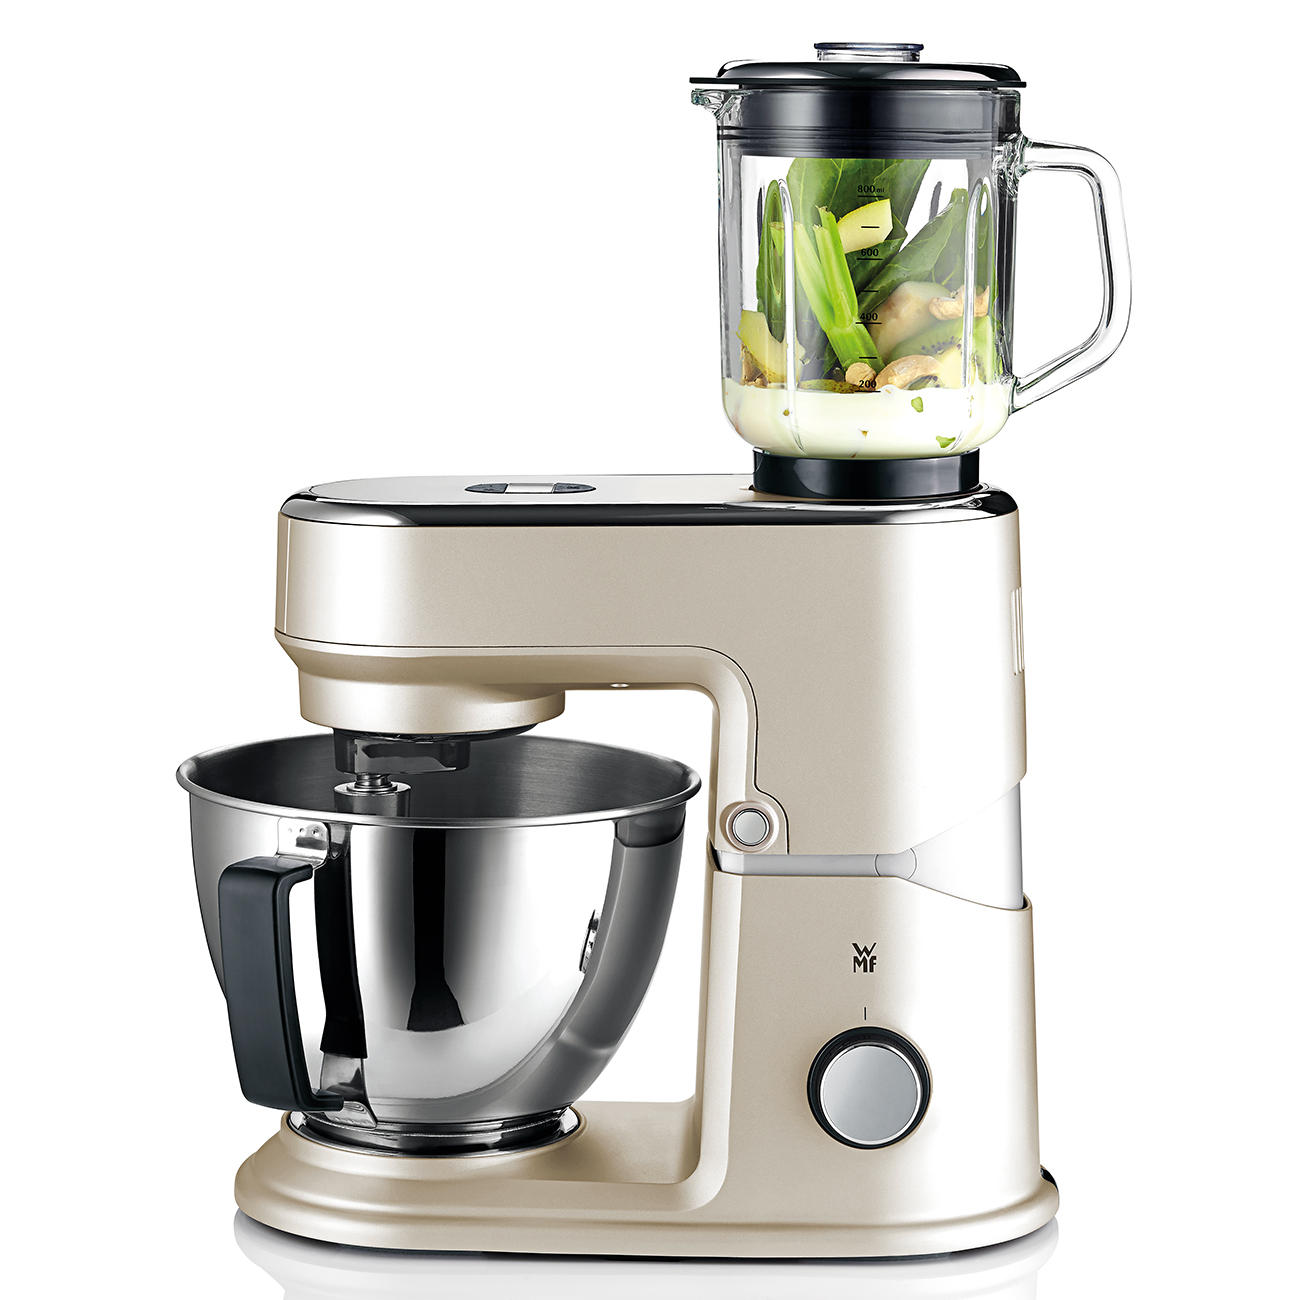 Buy Wmf Kitchenminis Food Processor Online